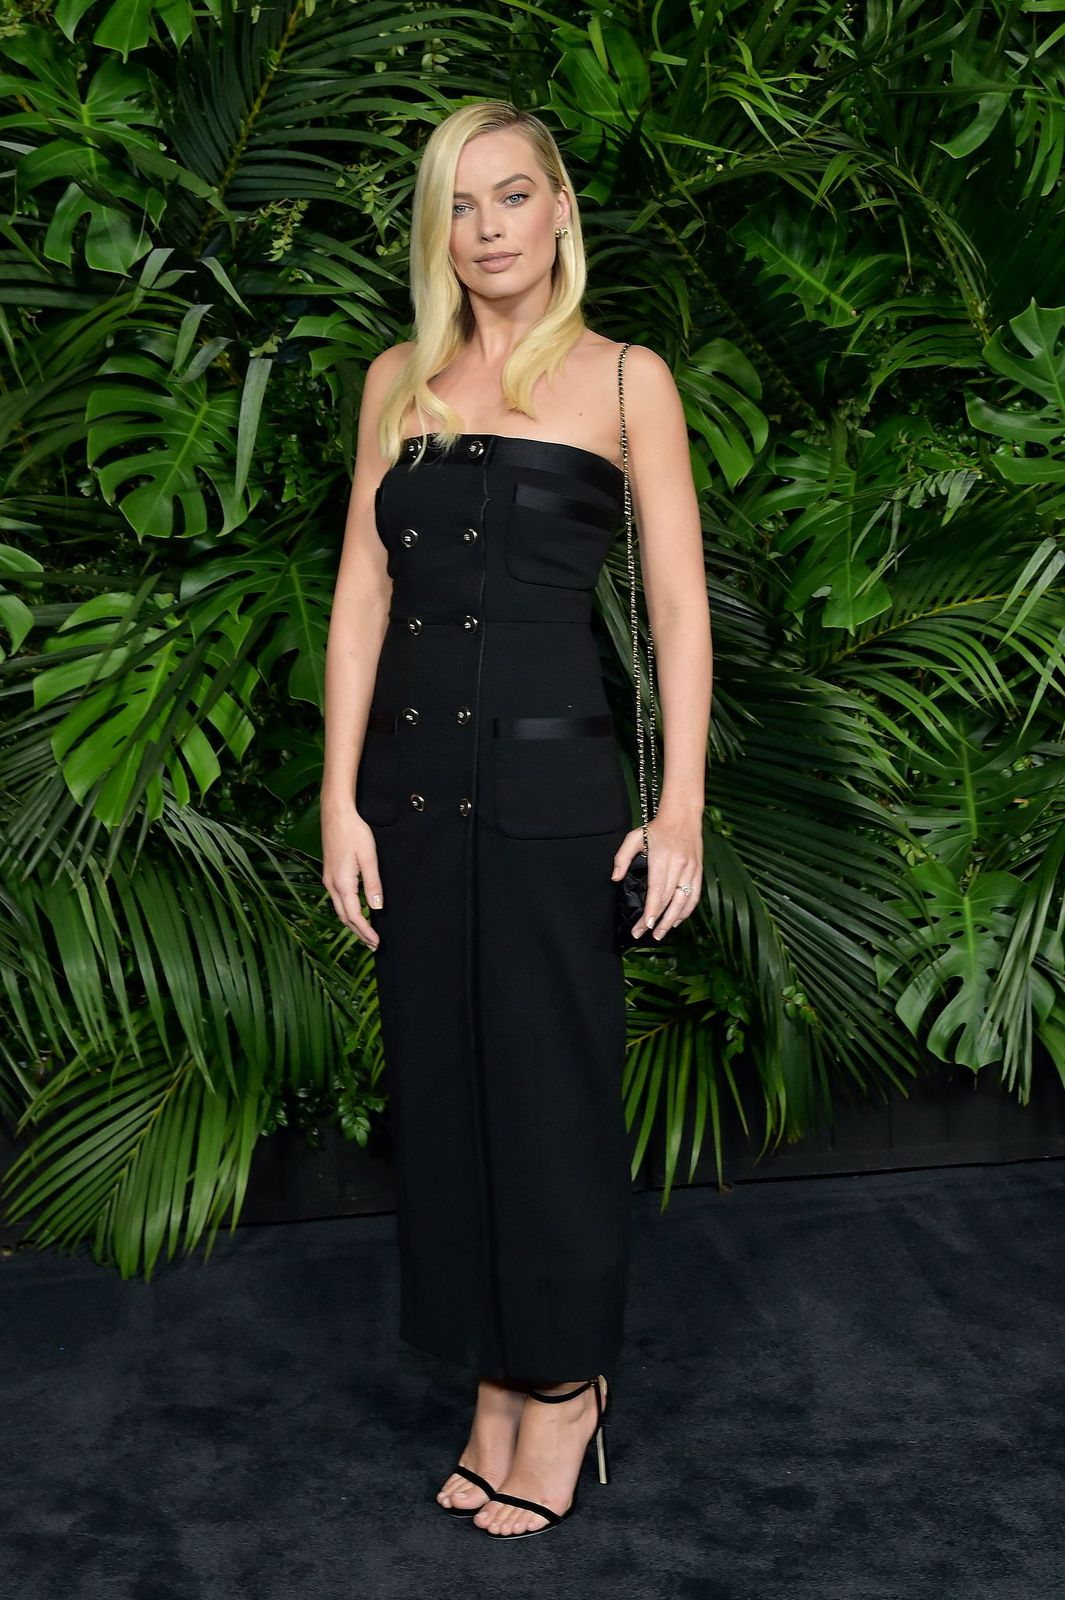 Margot Robbie attending Chanel's Oscar Party 2020/Photo:Getty Images